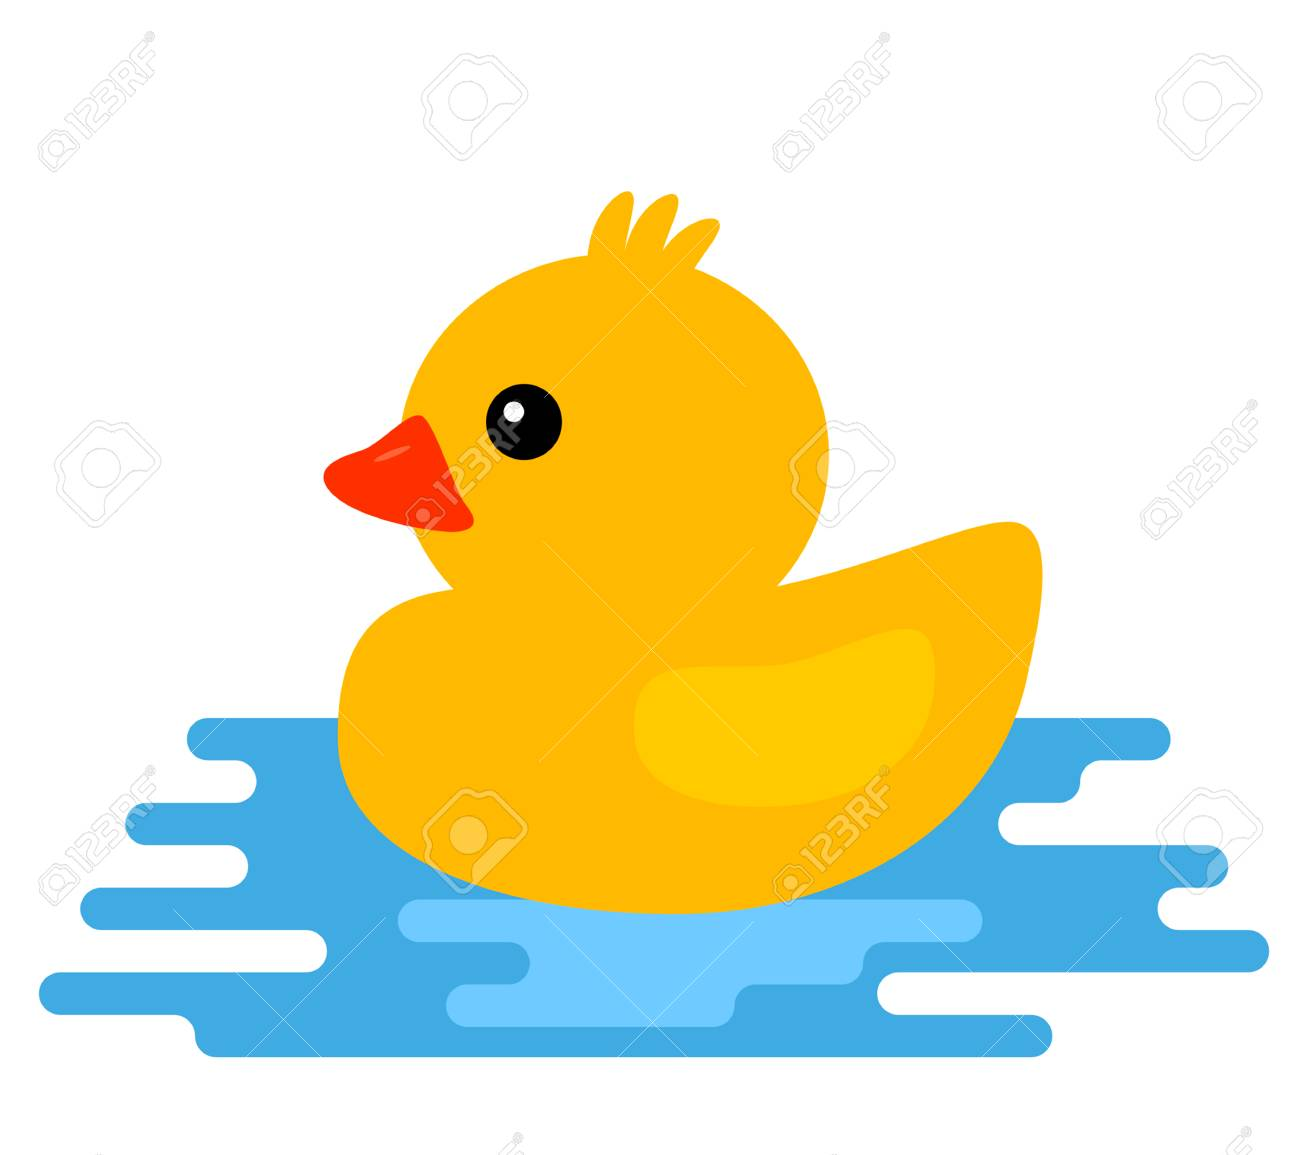 Yellow Rubber Duck Vector Illustration Of Cartoon Style Isolated On White Background